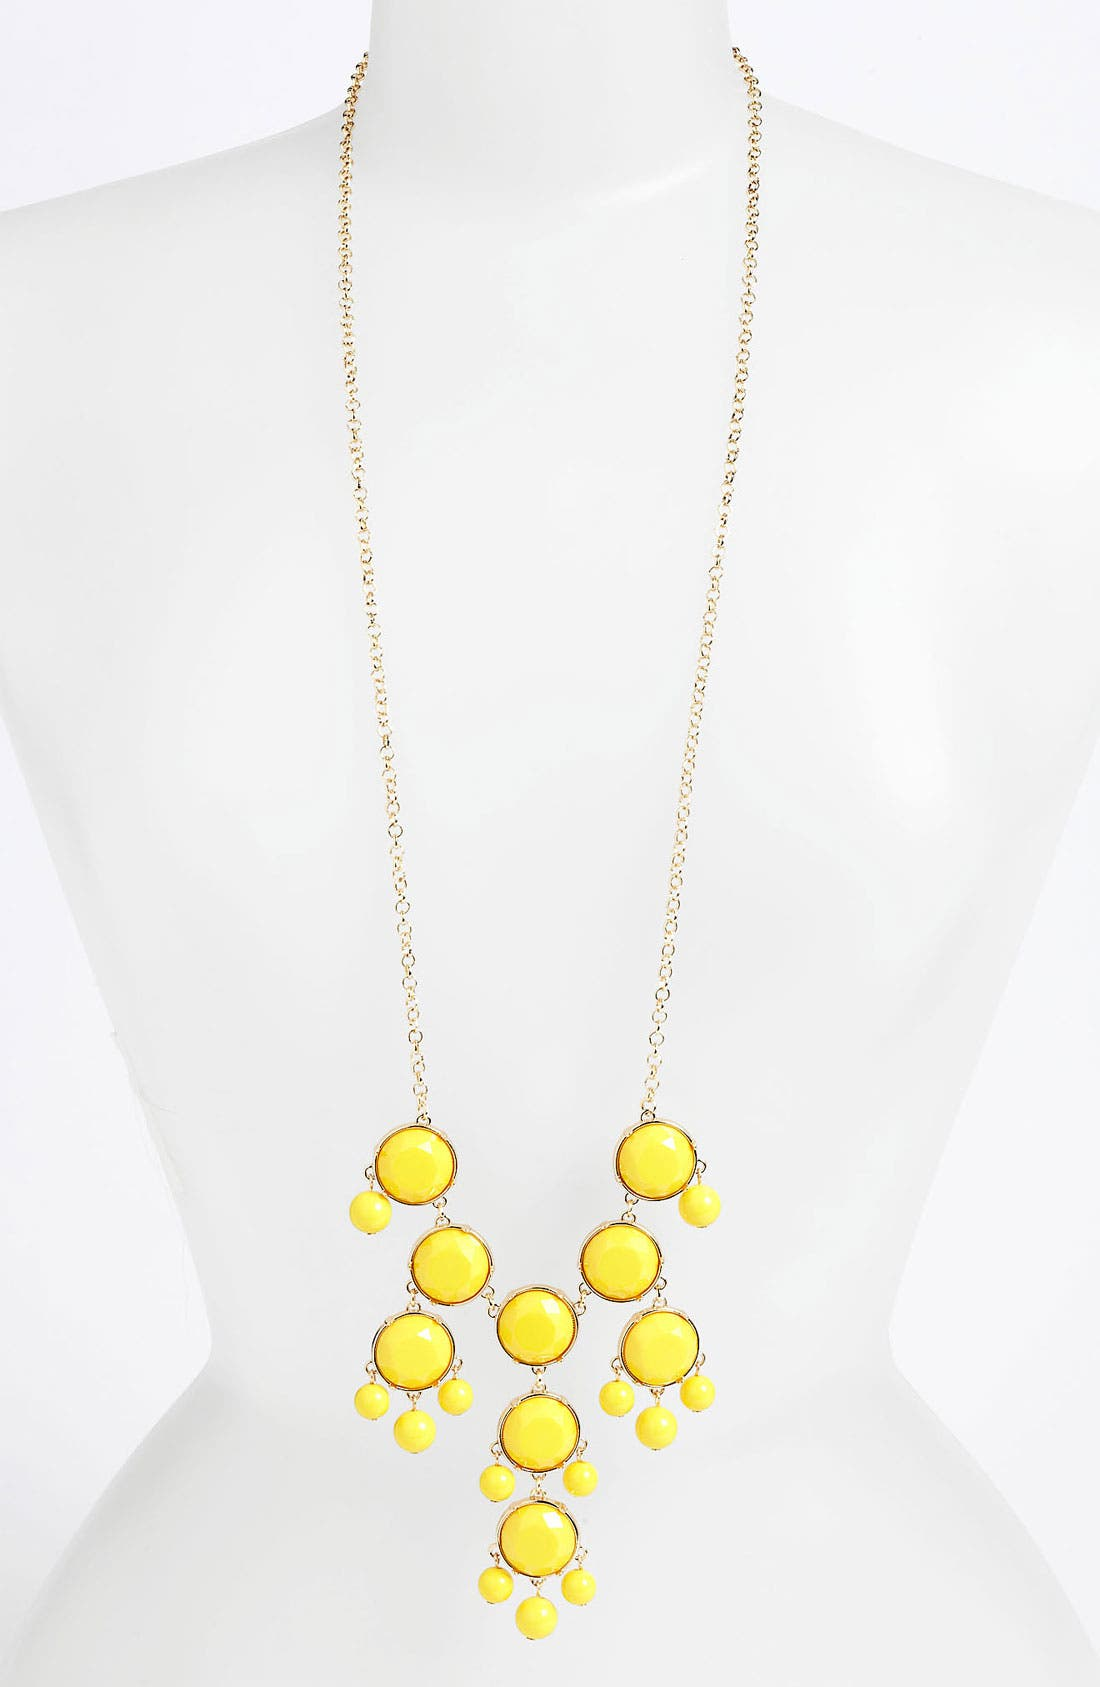 Main Image - BP. Sunburst Statement Necklace